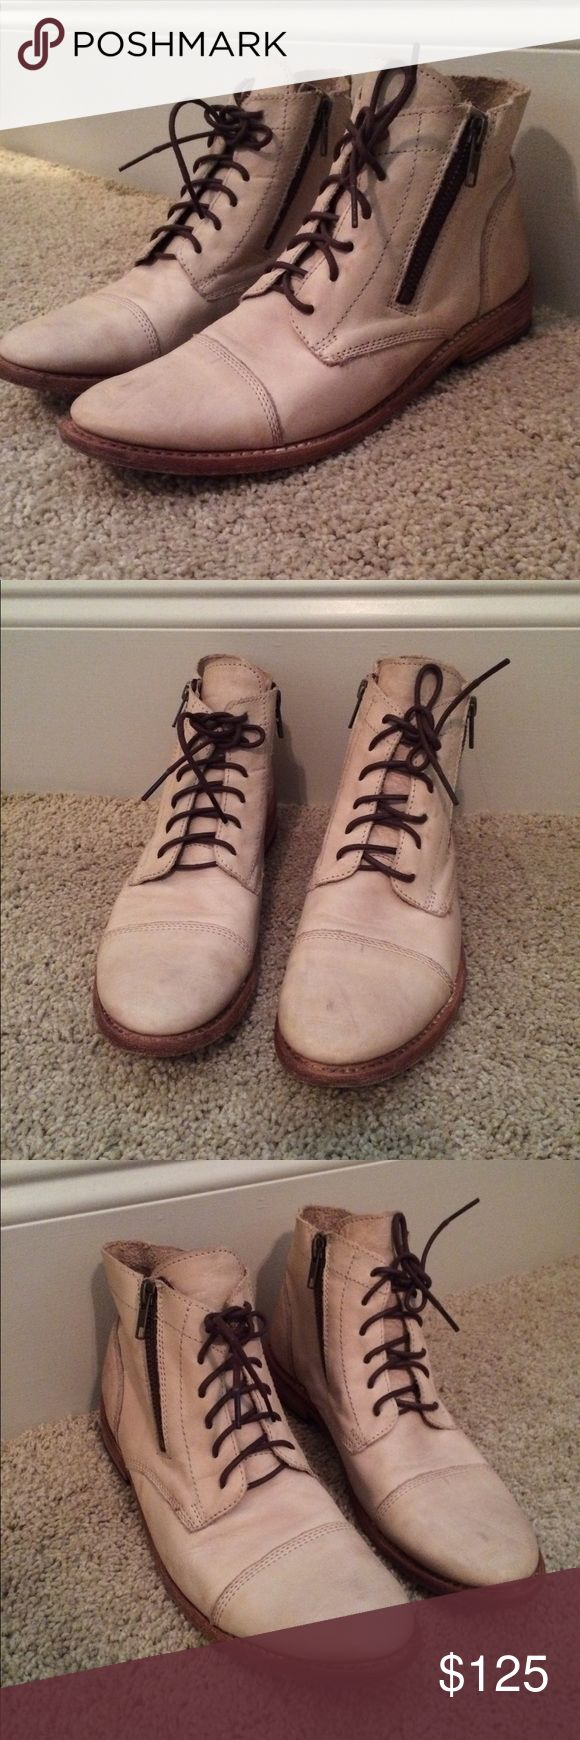 Bed Stu Bonnie boots Nude color. Only worn 2 or 3 times, great condition! Bed Stu Shoes Combat & Moto Boots